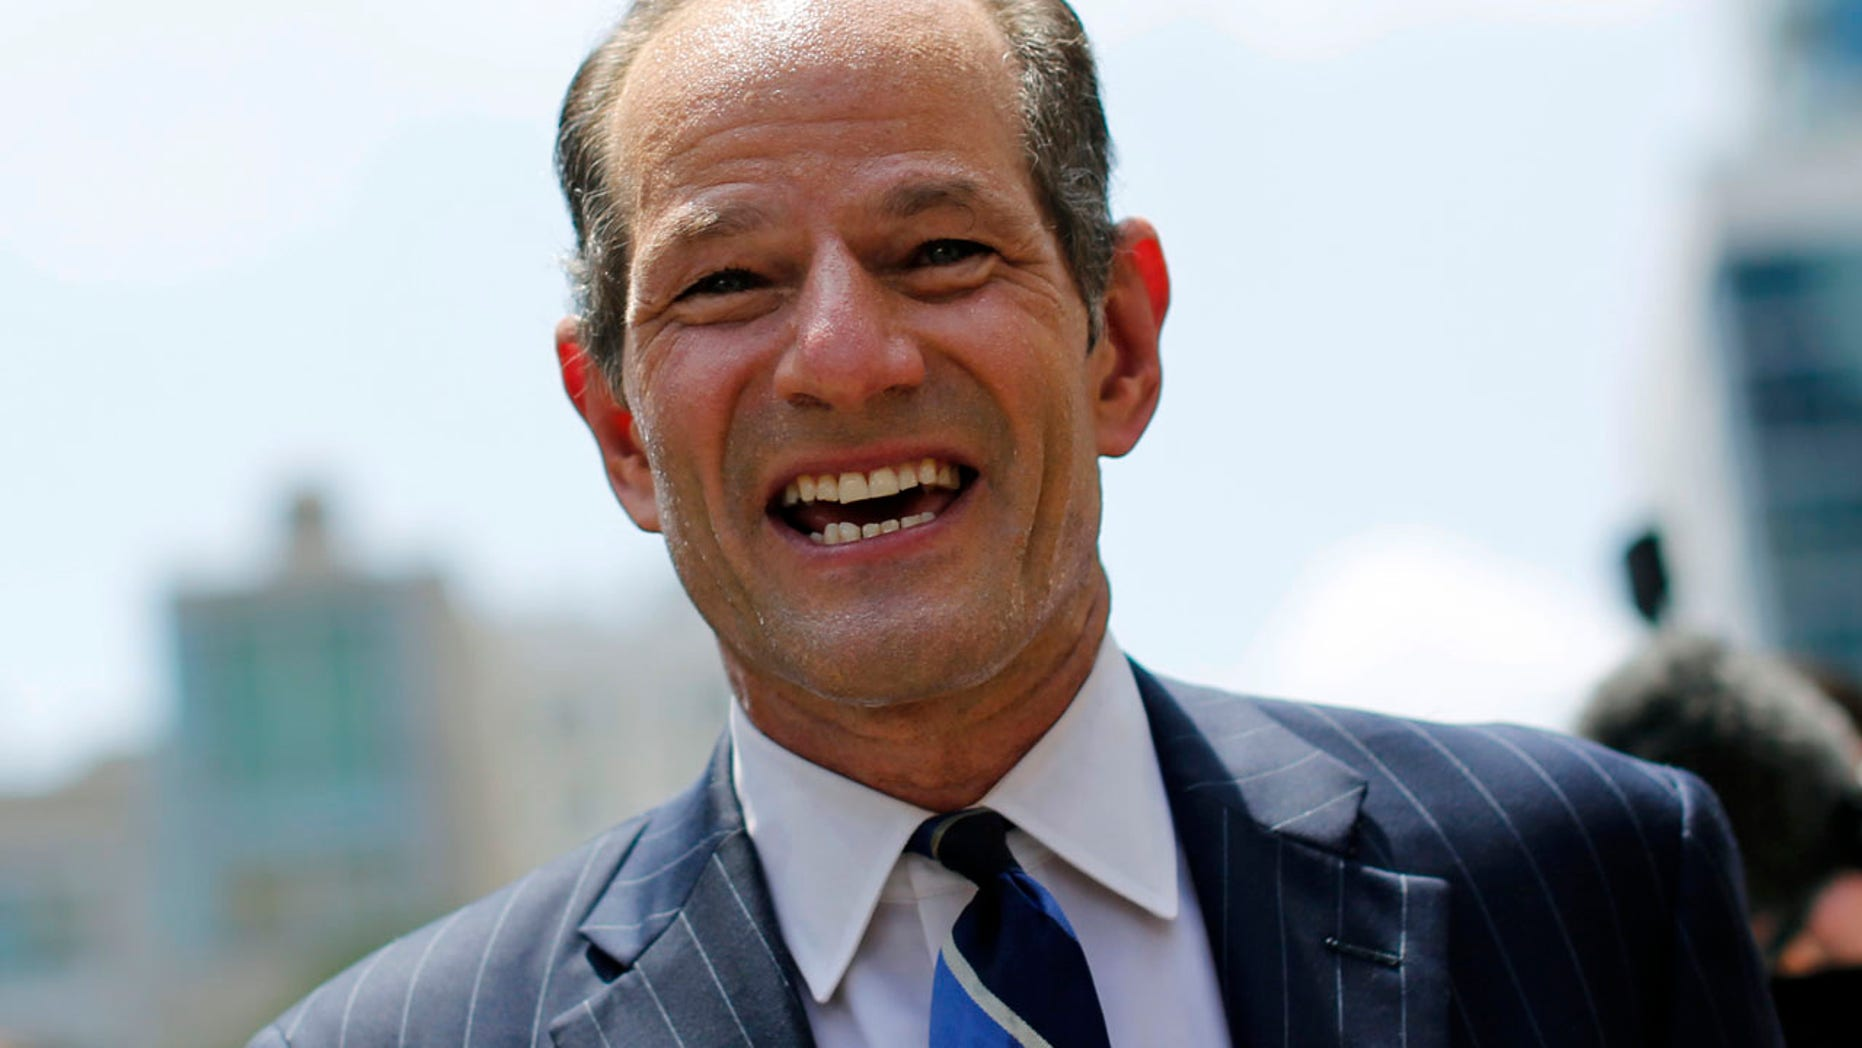 FILE 2013: A spokeswoman for disgraced former Gov. Eliot Spitzer said he did not make any threats during an argument at an New York restaurant.